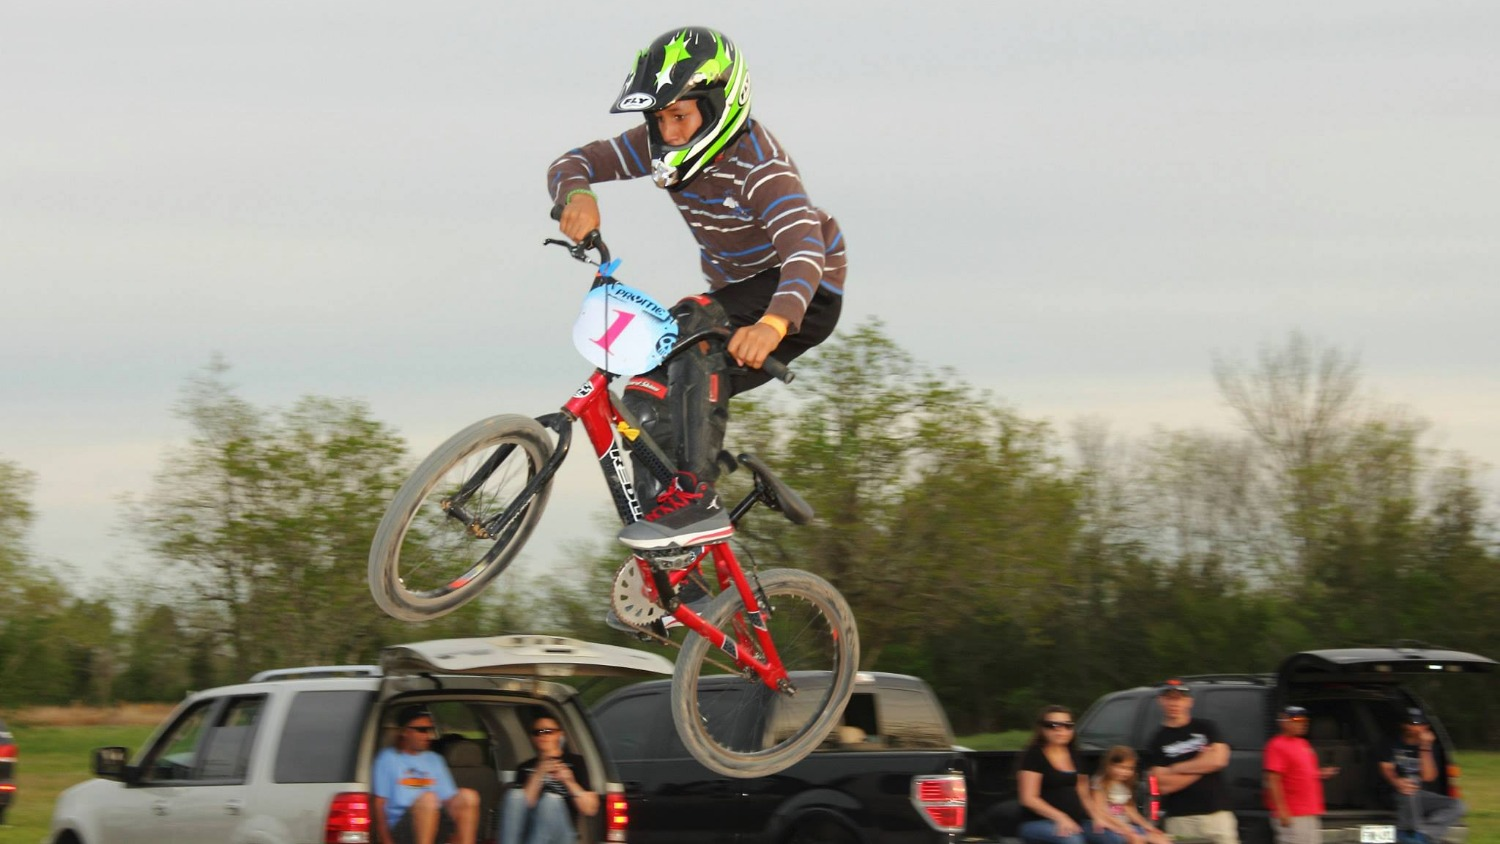 BMX - Pearland's affordable sport